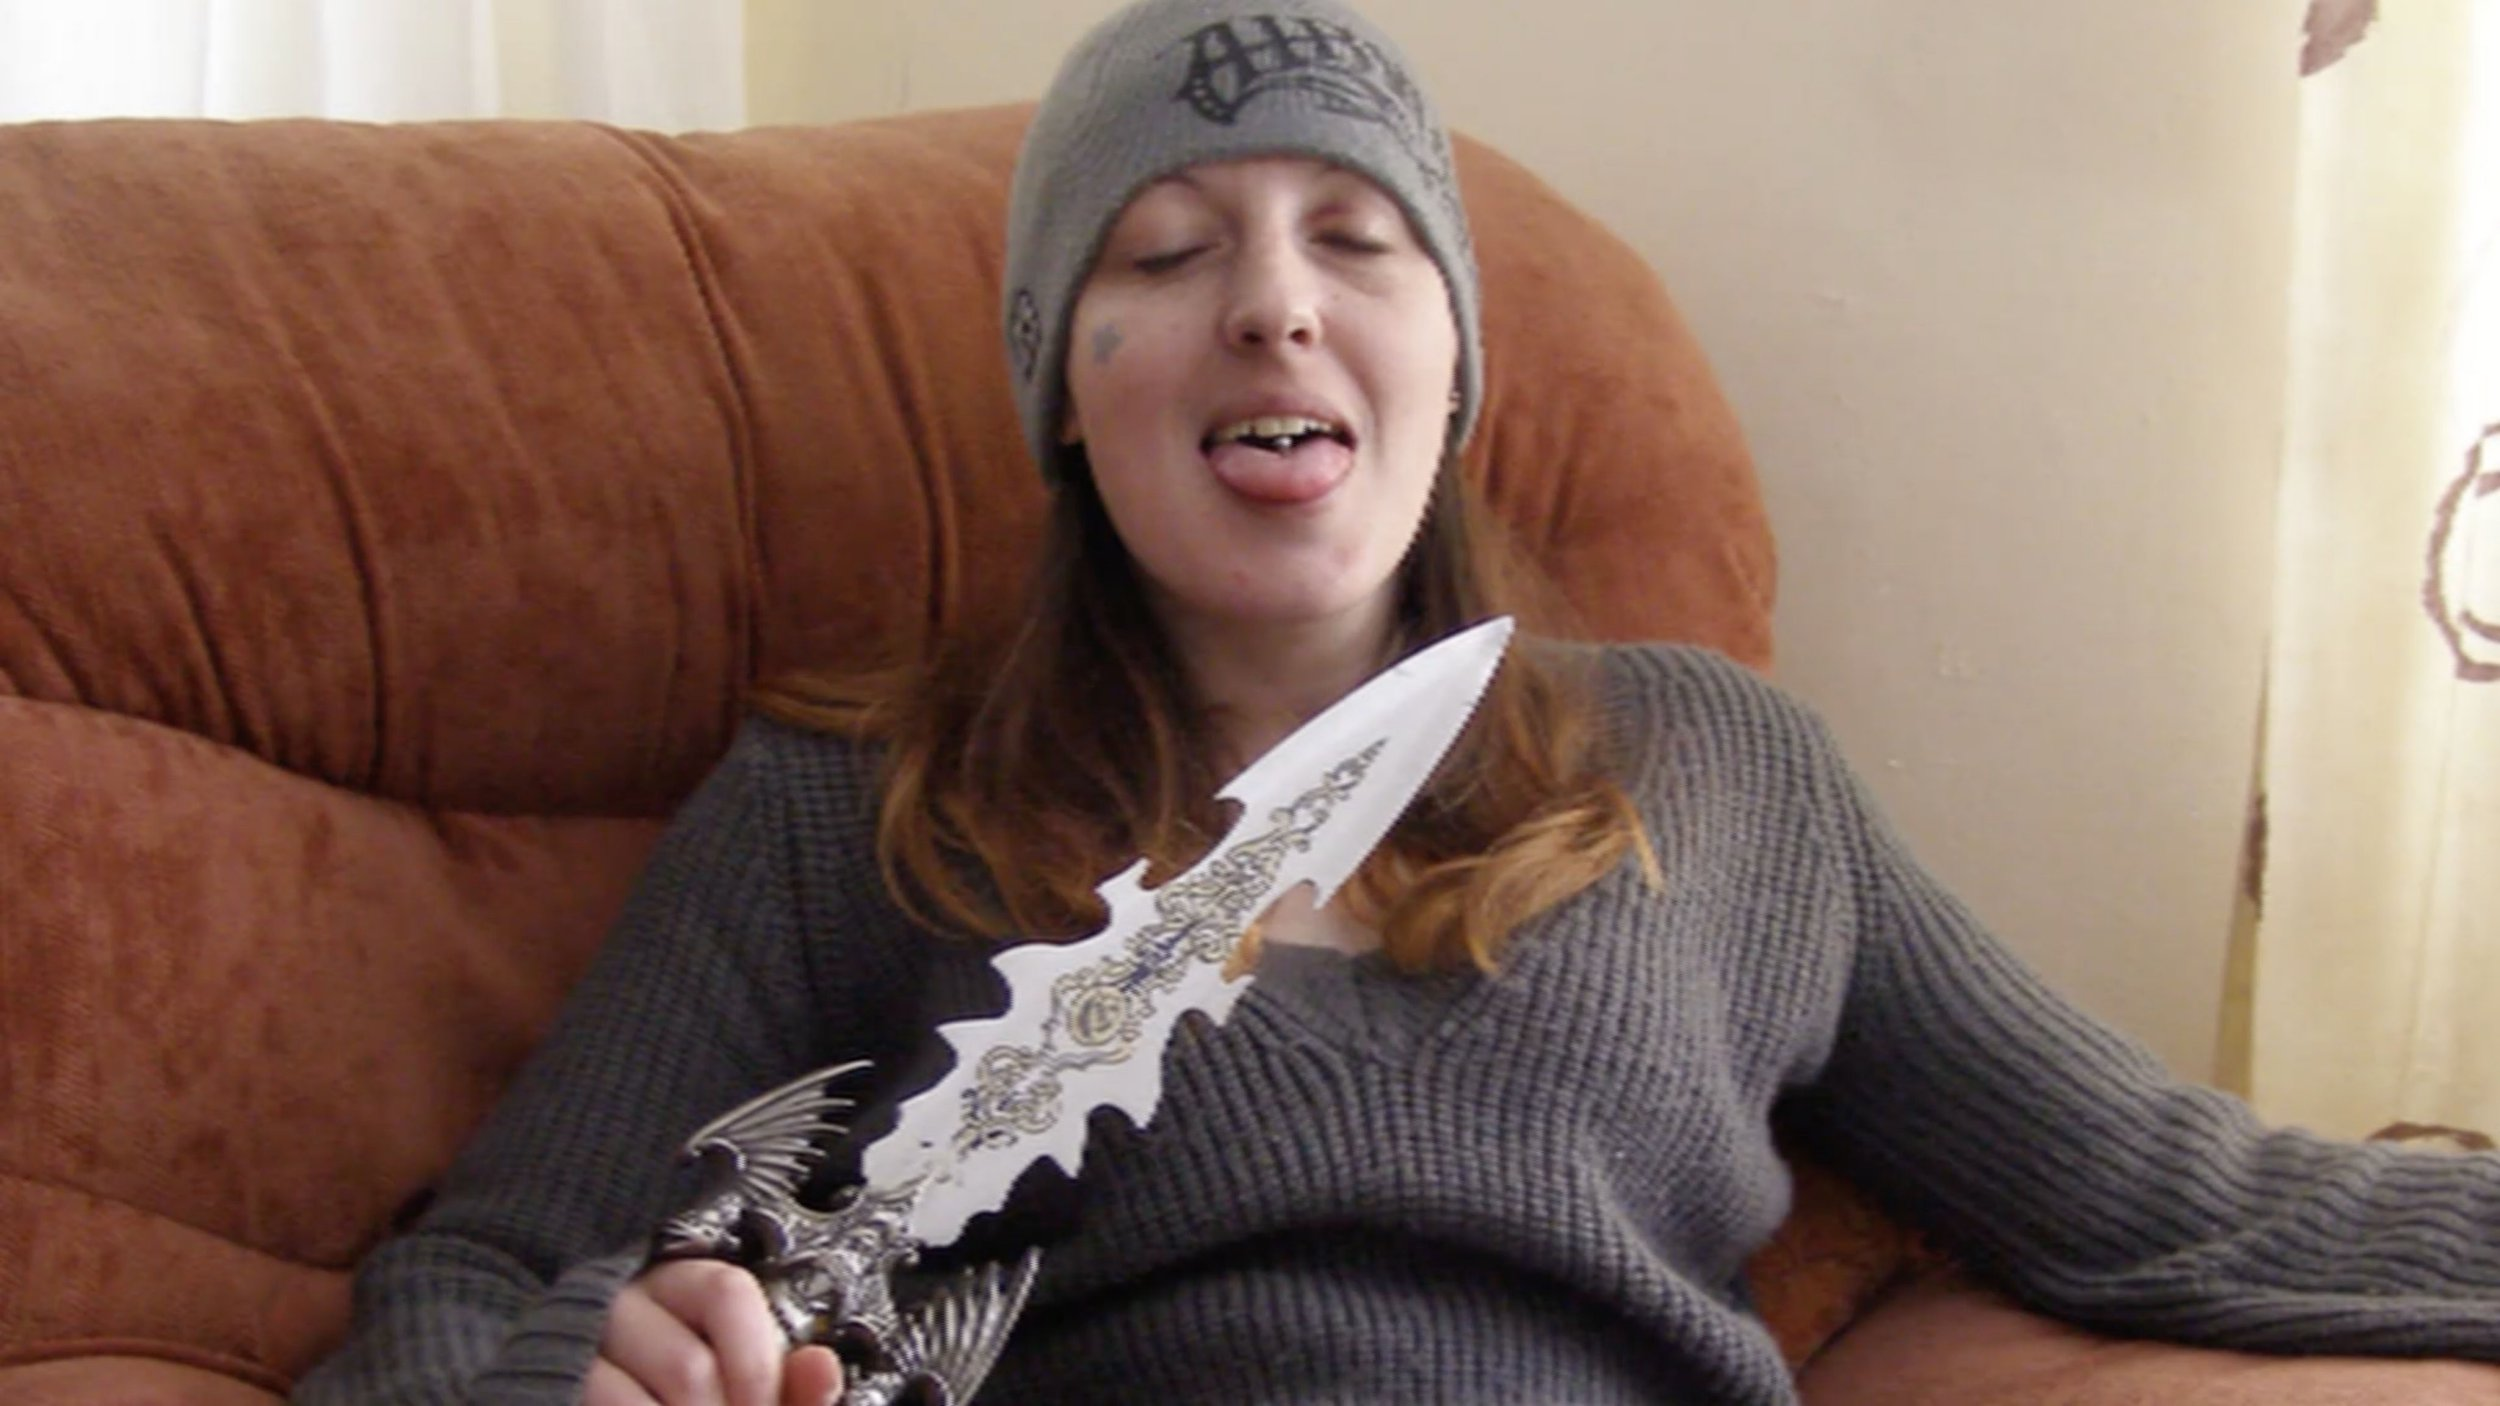 From ITN Productions JOANNE DENNEHY: SERIAL KILLER Thursday April 18th 2019 on ITV Pictured: Police picture of Joanne Dennehy holding a huge knife In this new documentary in ITV?s Crime & Punishment strand, Susanna Reid gains exclusive access to police evidence from the investigation into one of Britain?s most notorious serial killers, Joanne Dennehy, who murdered three men on a killing spree. Over two weeks in 2013, 30-year-old Dennehy murdered three men and attempted to kill two others. At trial, she showed no remorse for her victims, and became one of only three British women ever to be sentenced to spend the rest of her life behind bars. Five years on from Dennehy?s conviction, Susanna Reid speaks to the lead detective, the father of her two children, family members of victims, a man who was present when two of the attacks took place, school friends and experts to paint a picture of how an intelligent and privileged young girl transformed into a dangerous, bloodthirsty psychopath. (C) ITN Productions For further information please contact Peter Gray 0207 157 3046 peter.gray@itv.com This photograph is ? ITV and can only be reproduced for editorial purposes directly in connection with the programme JOANNE DENNEHY: THE MAKING OF A SERIAL KILLER or ITV. Once made available by the ITV Picture Desk, this photograph can be reproduced once only up until the Transmission date and no reproduction fee will be charged. Any subsequent usage may incur a fee. This photograph must not be syndicated to any other publication or website, or permanently archived, without the express written permission of ITV Picture Desk. Full Terms and conditions are available on the website https://www.itv.com/presscentre/itvpictures/terms